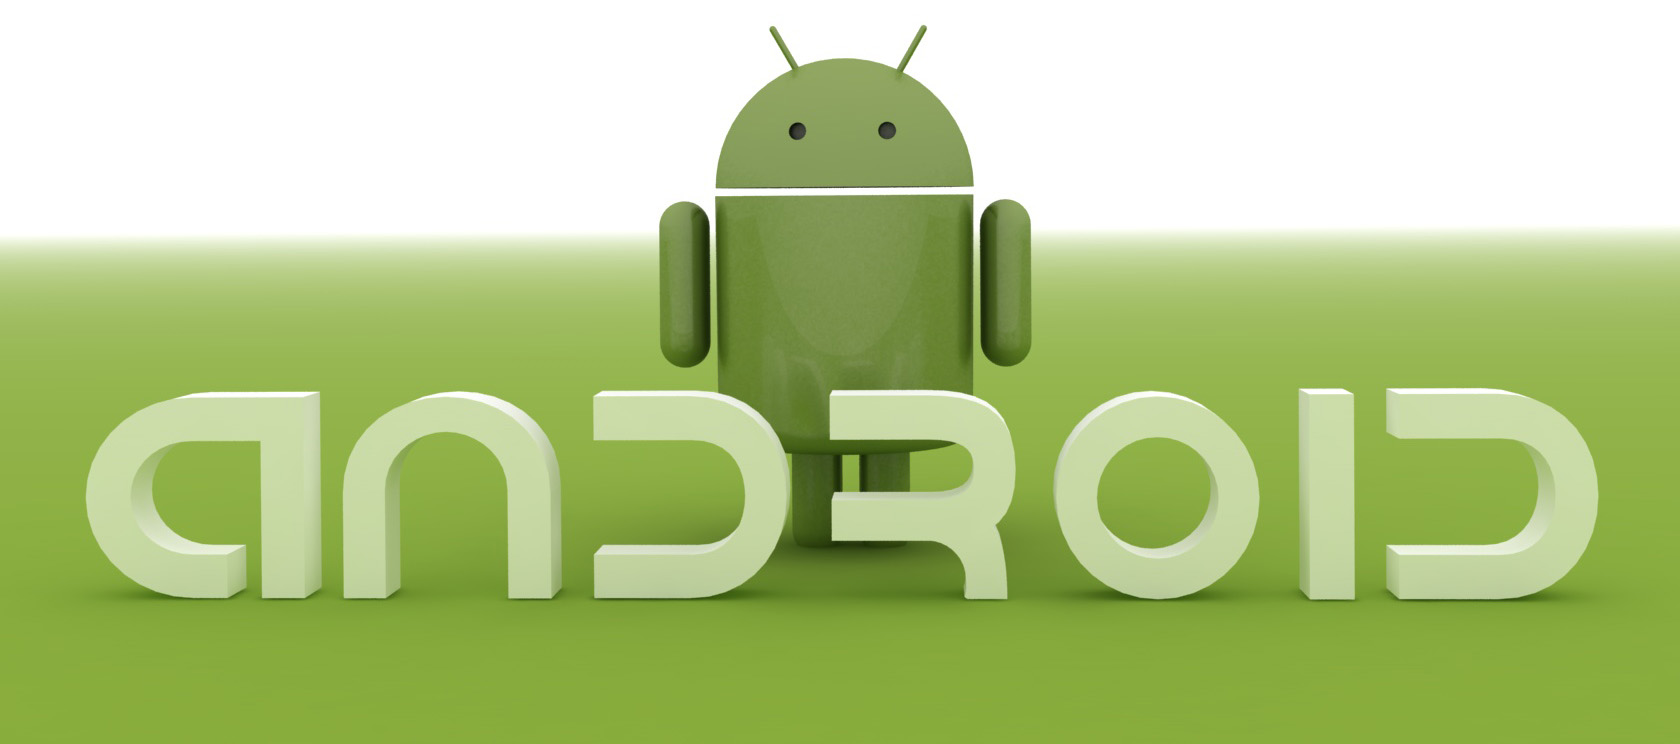 android-image (1)